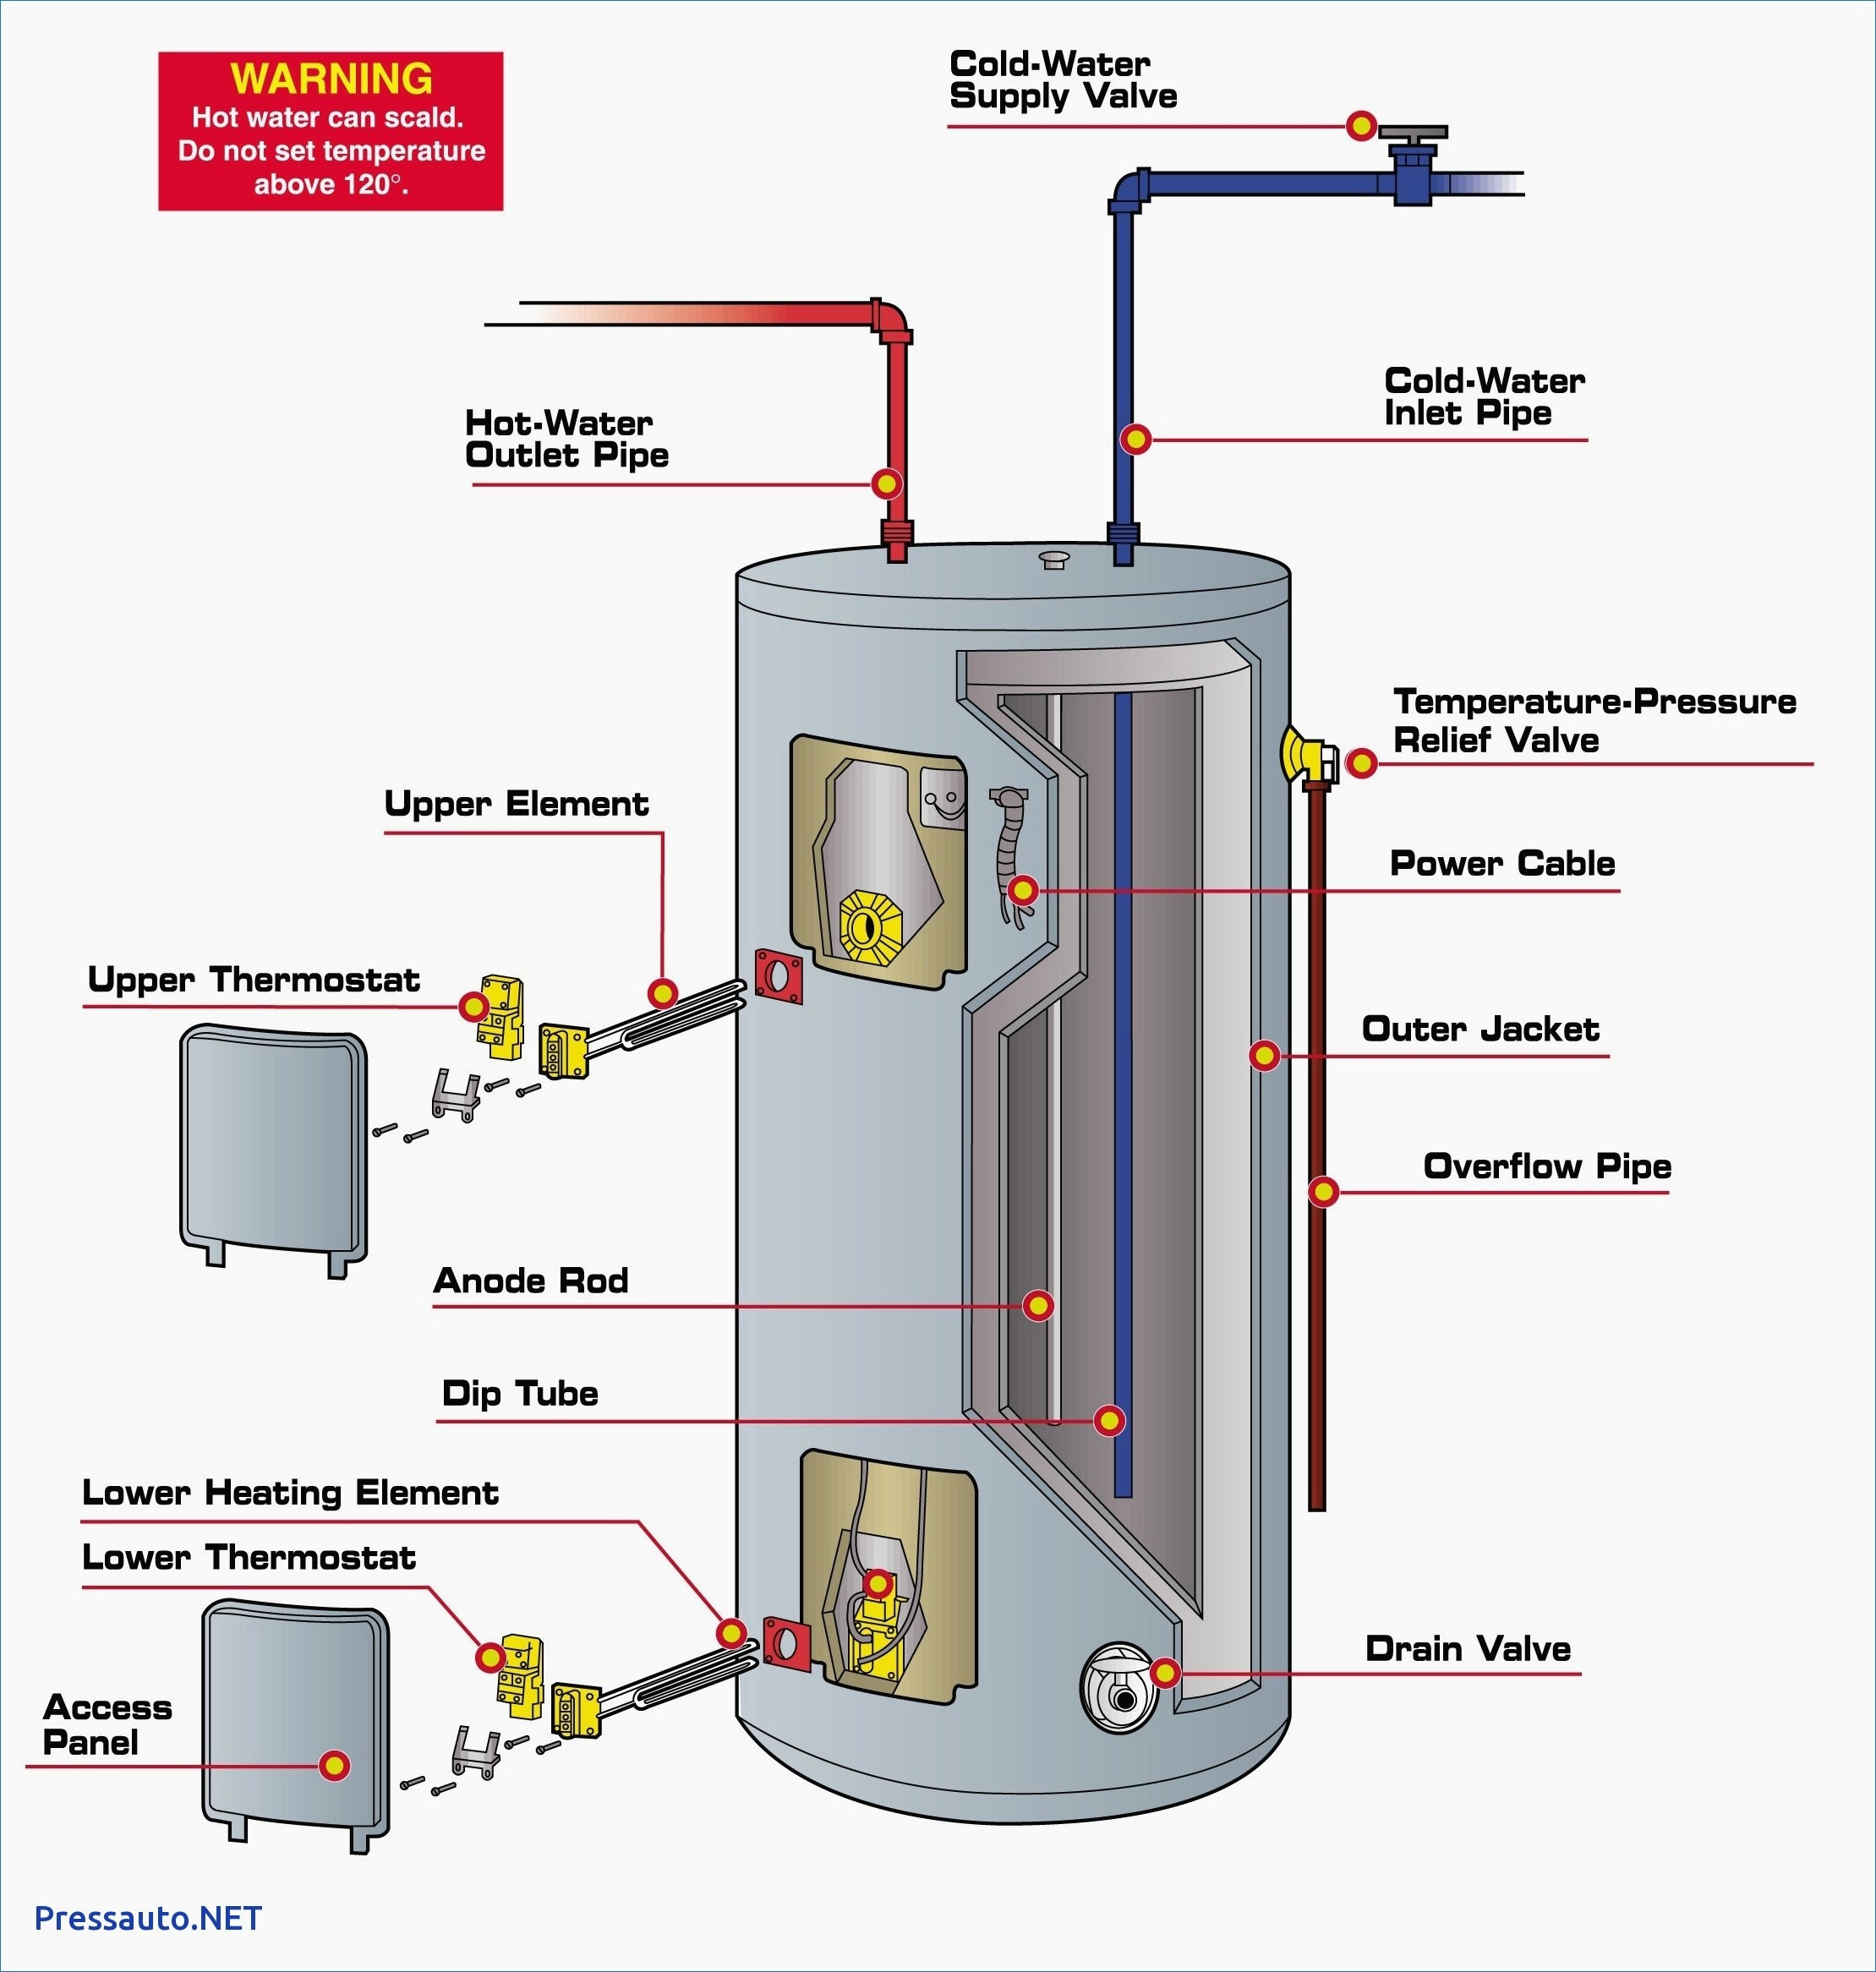 DIAGRAM] Tankless Hot Water Heater Wiring Diagram FULL Version HD Quality Wiring  Diagram - DUCTDIAGRAM.MARIOCRIVAROONLUS.ITDiagram Database